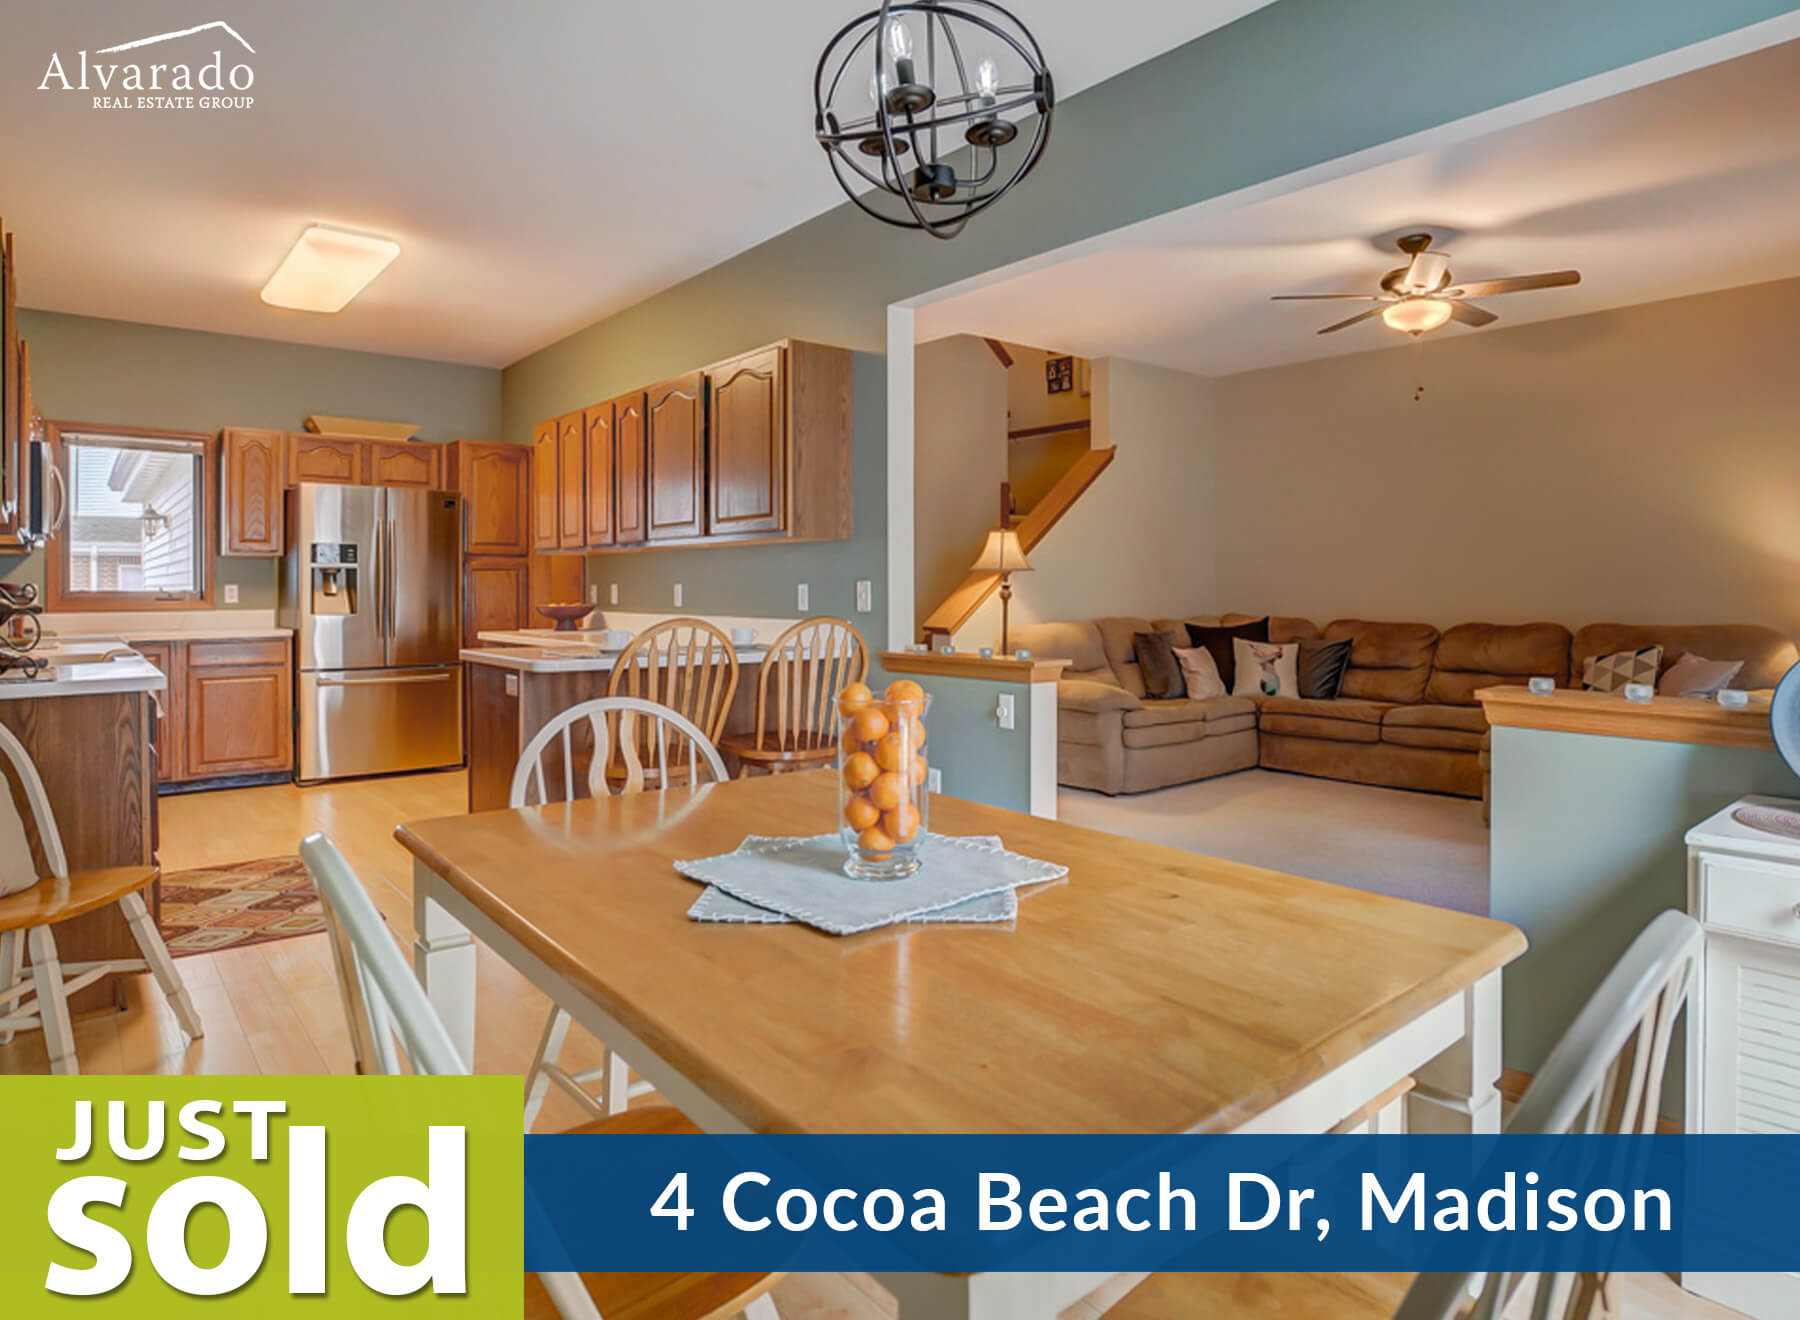 4 Cocoa Beach Dr, Madison – Sold by Alvarado Real Estate Group